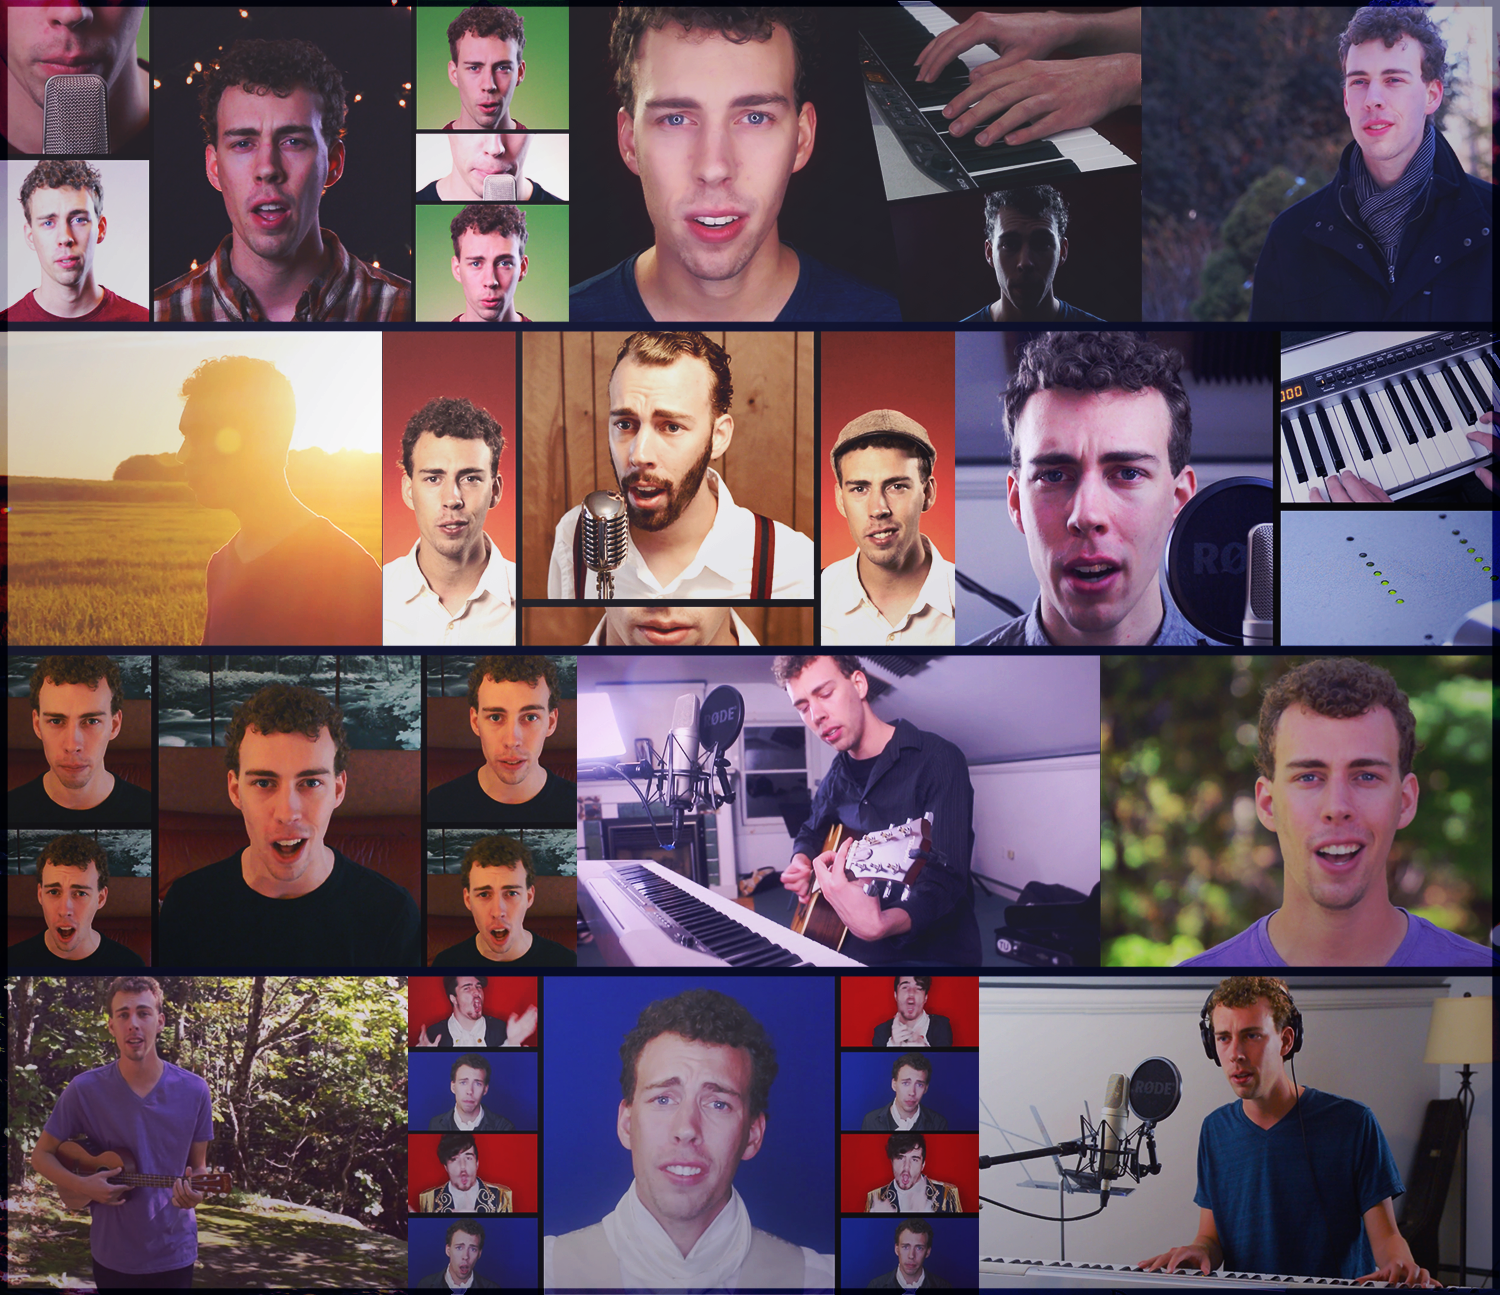 jacob website collage 2.png